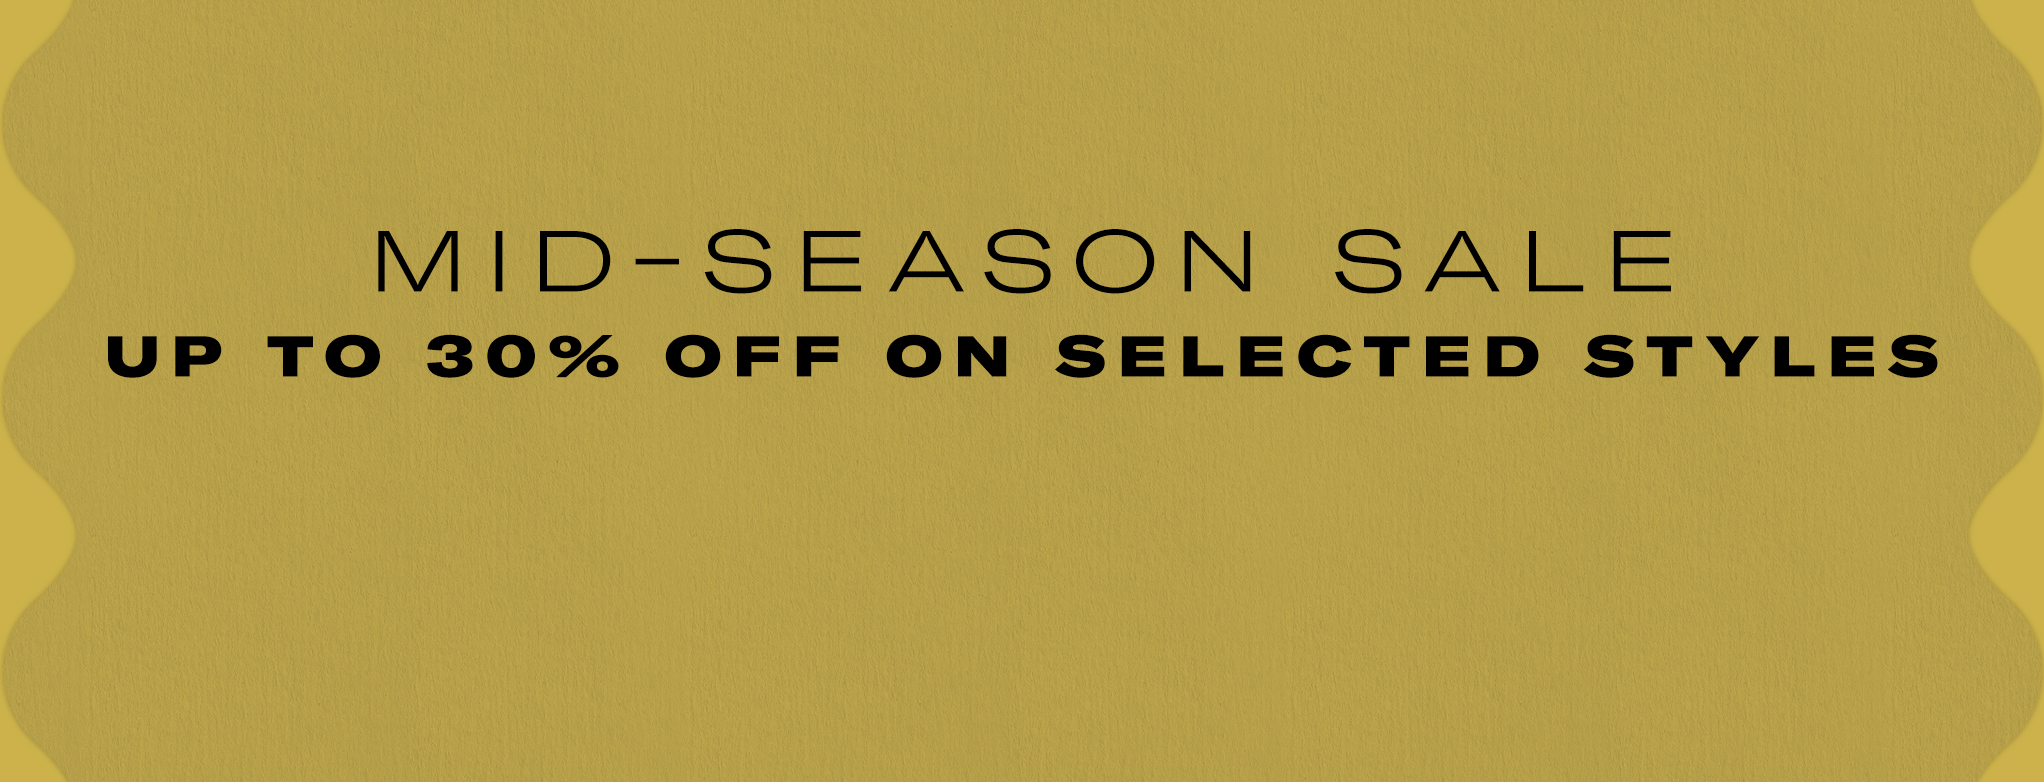 Mid-season sale all